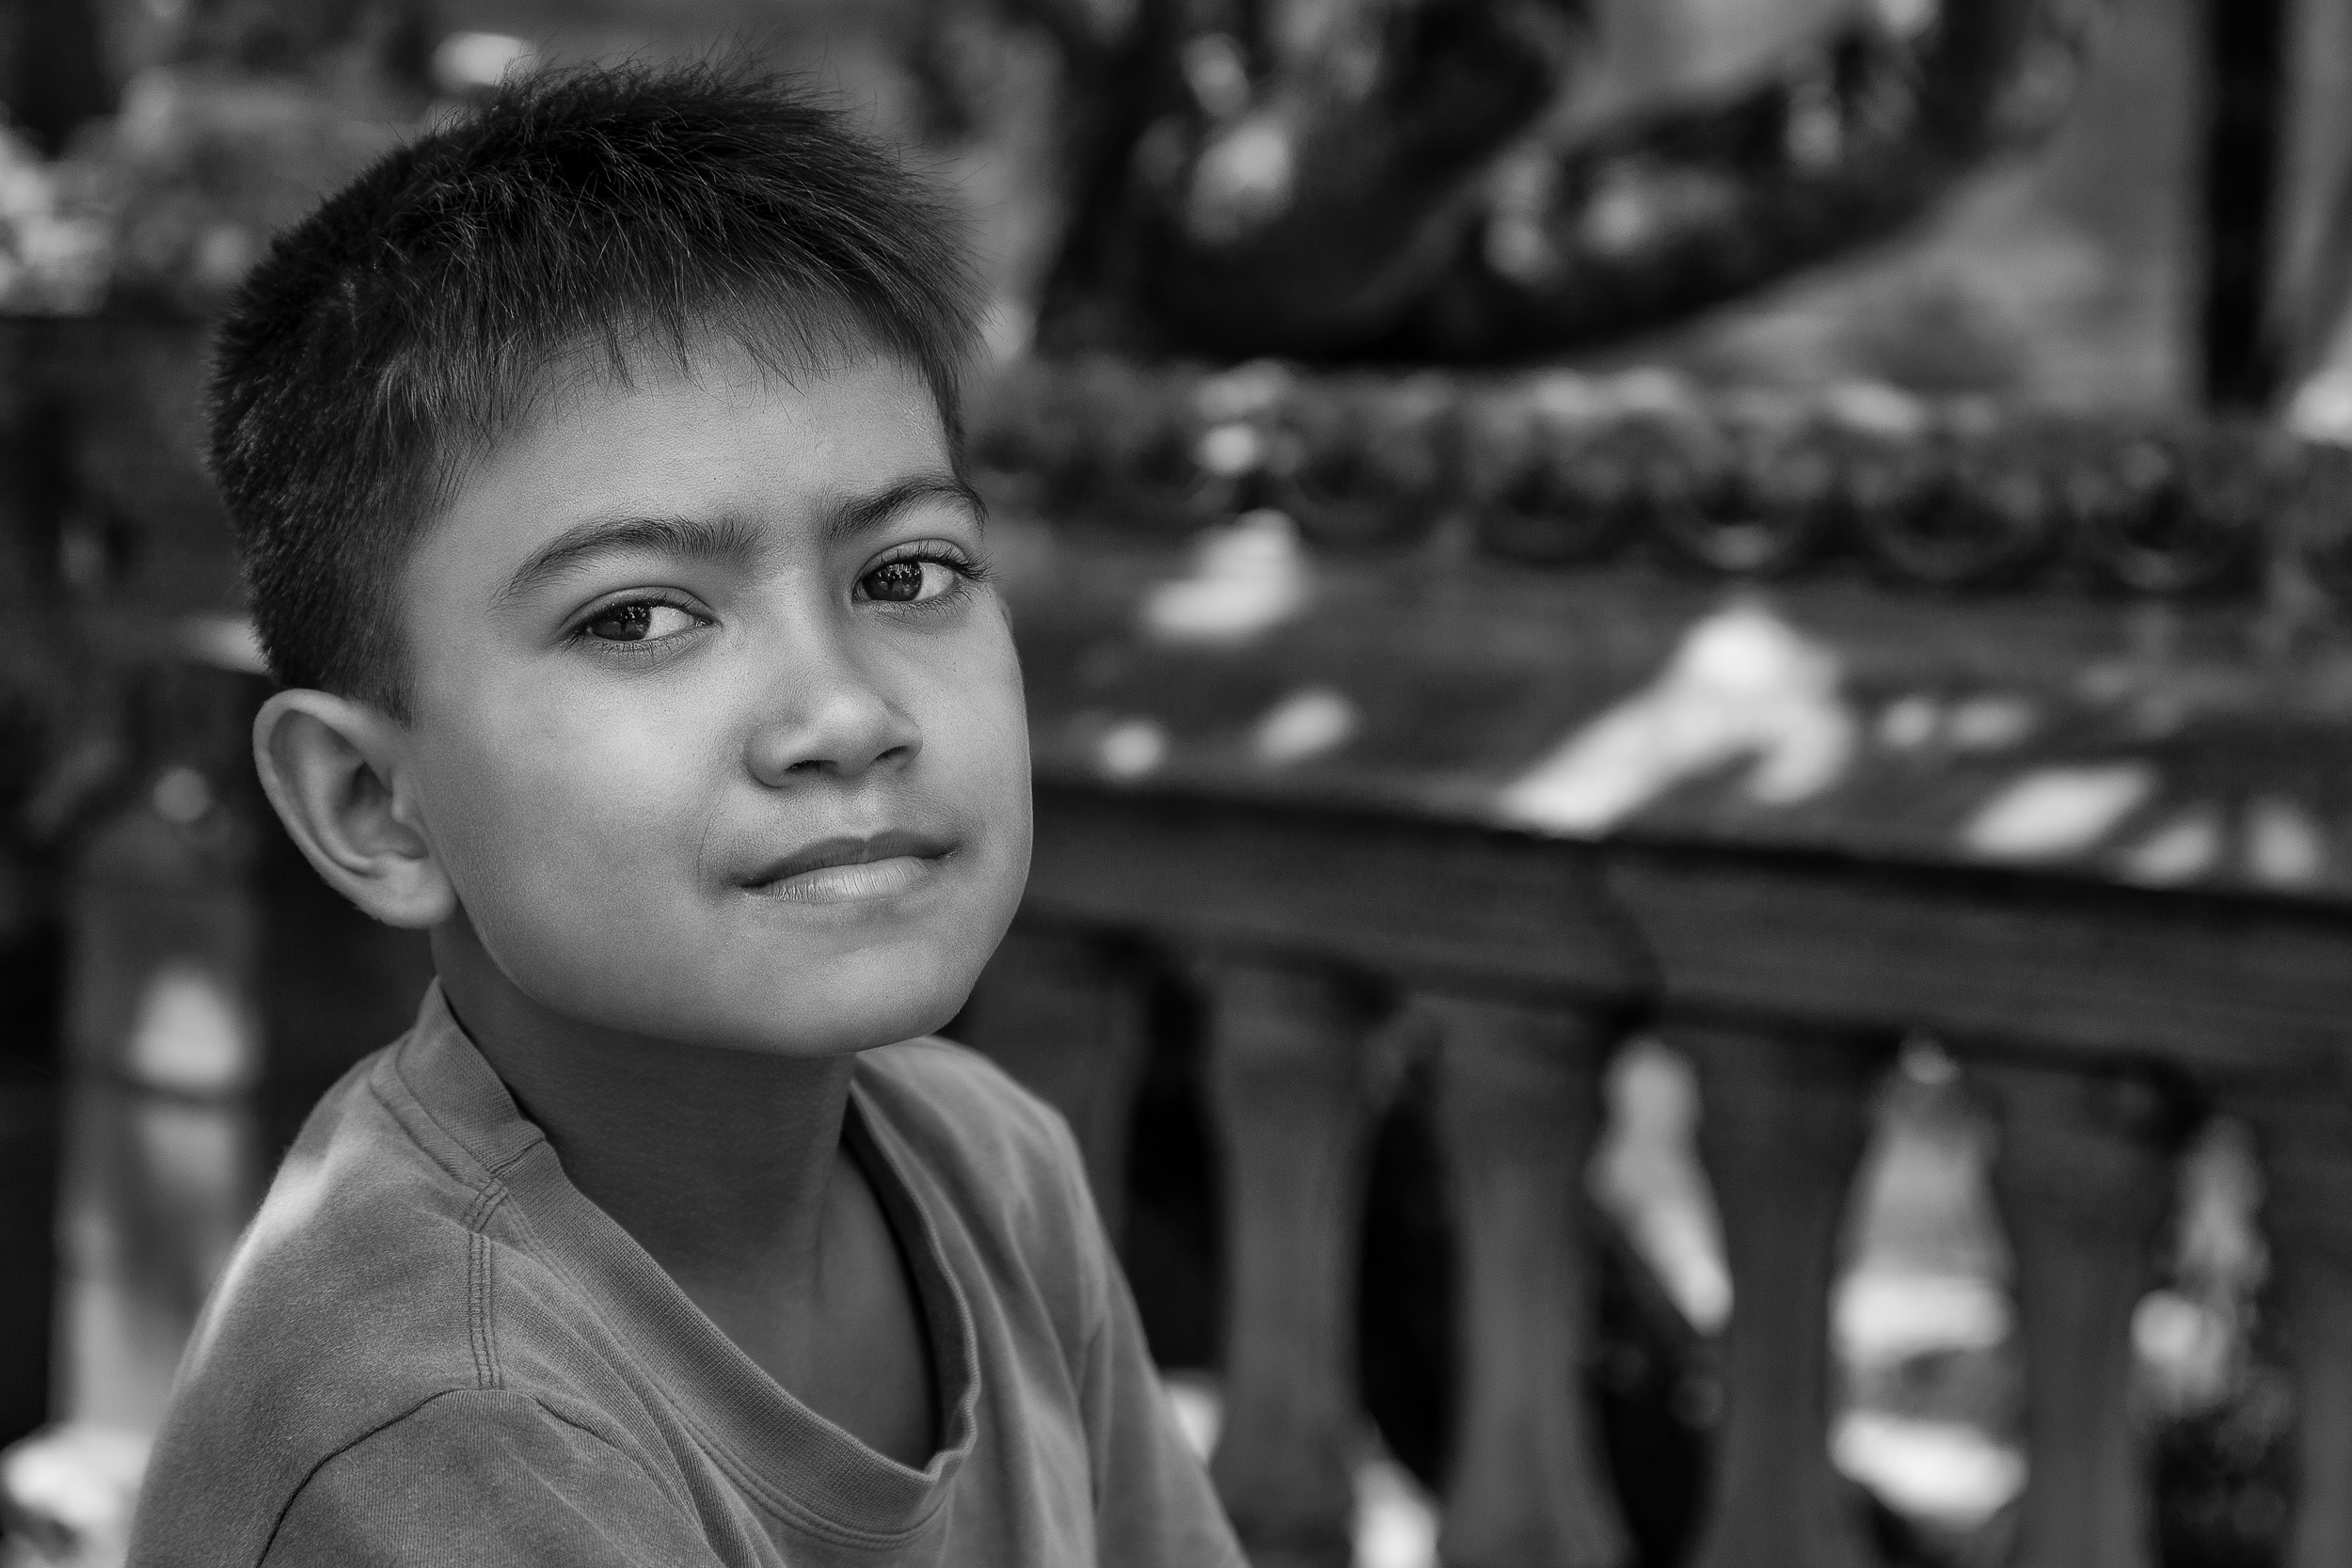 A black and white portrait of a young boy in rural Bali, Indonesia .